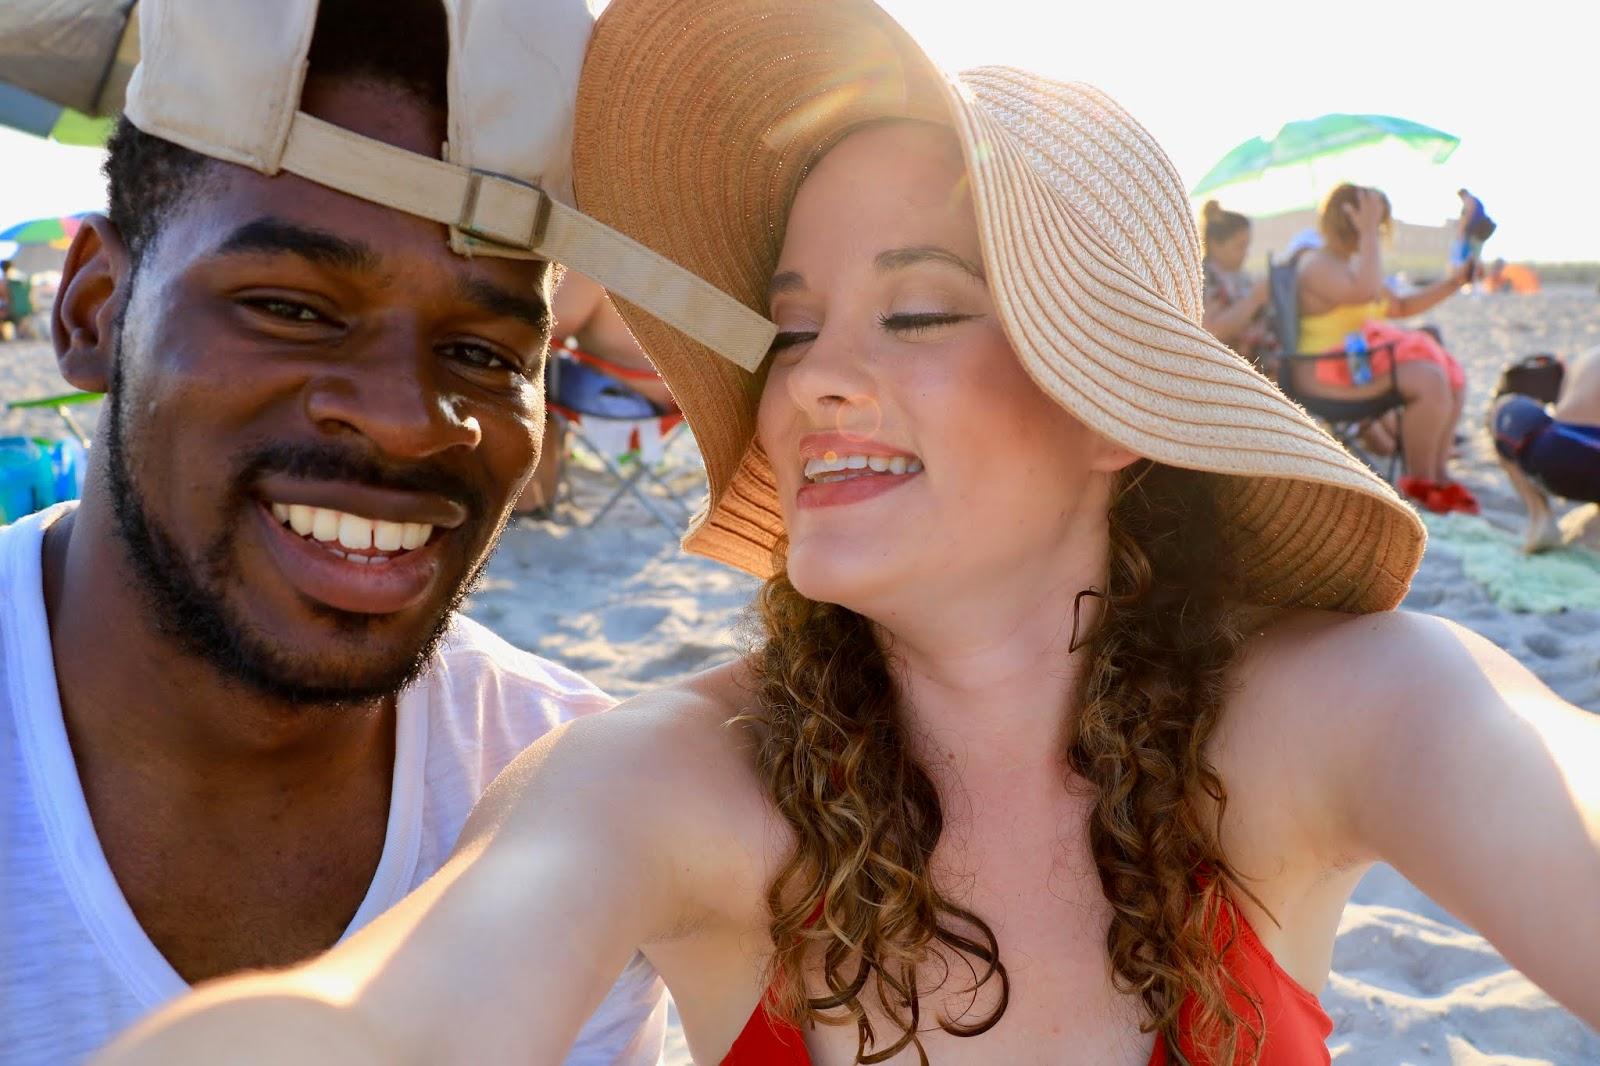 Nyc fashion blogger Kathleen Harper taking a beach selfie with Antonio Owens